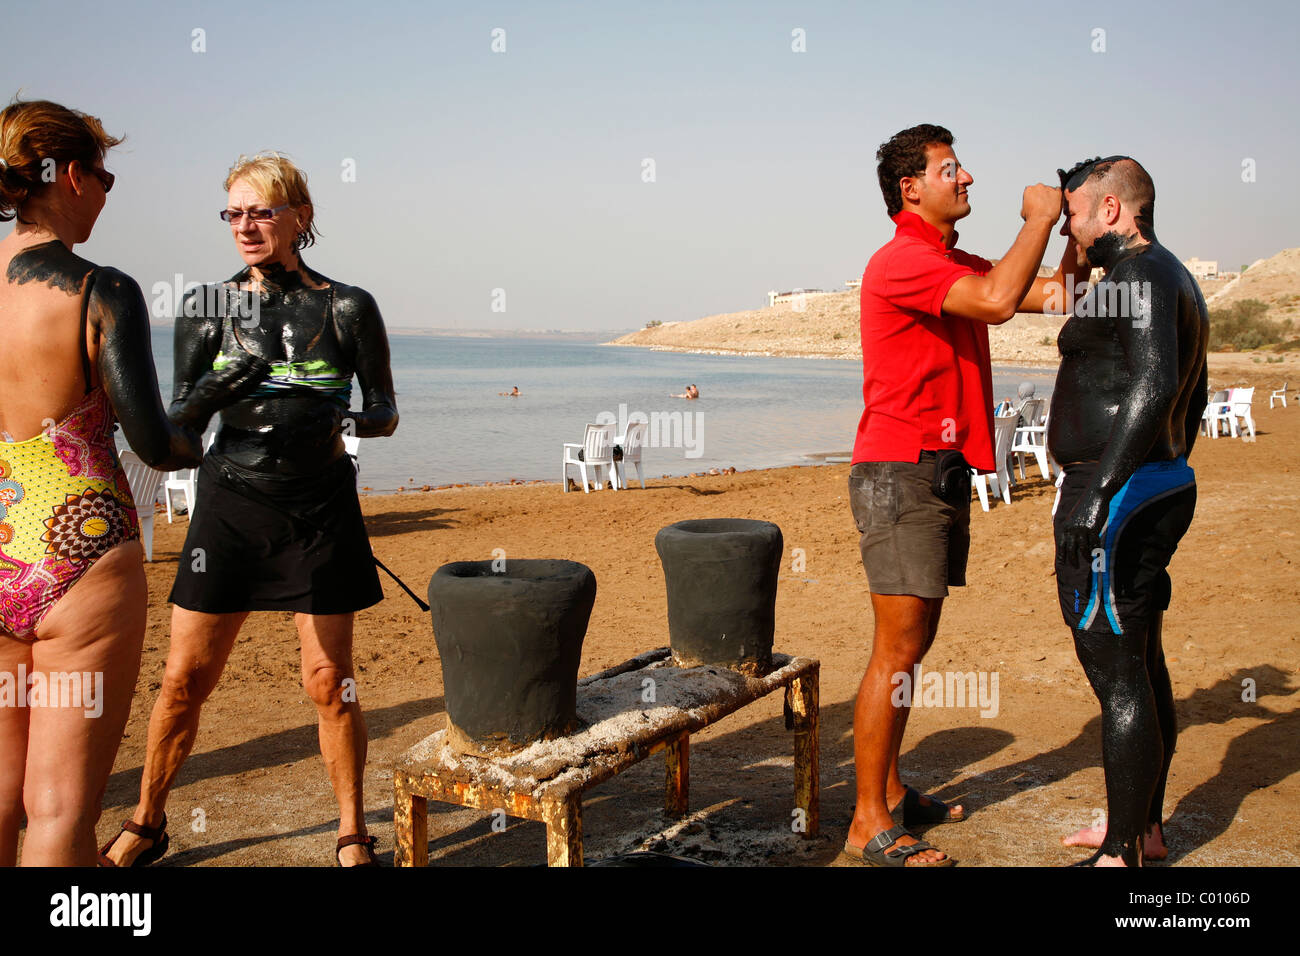 People covered with mud at the dead sea, Jordan. - Stock Image